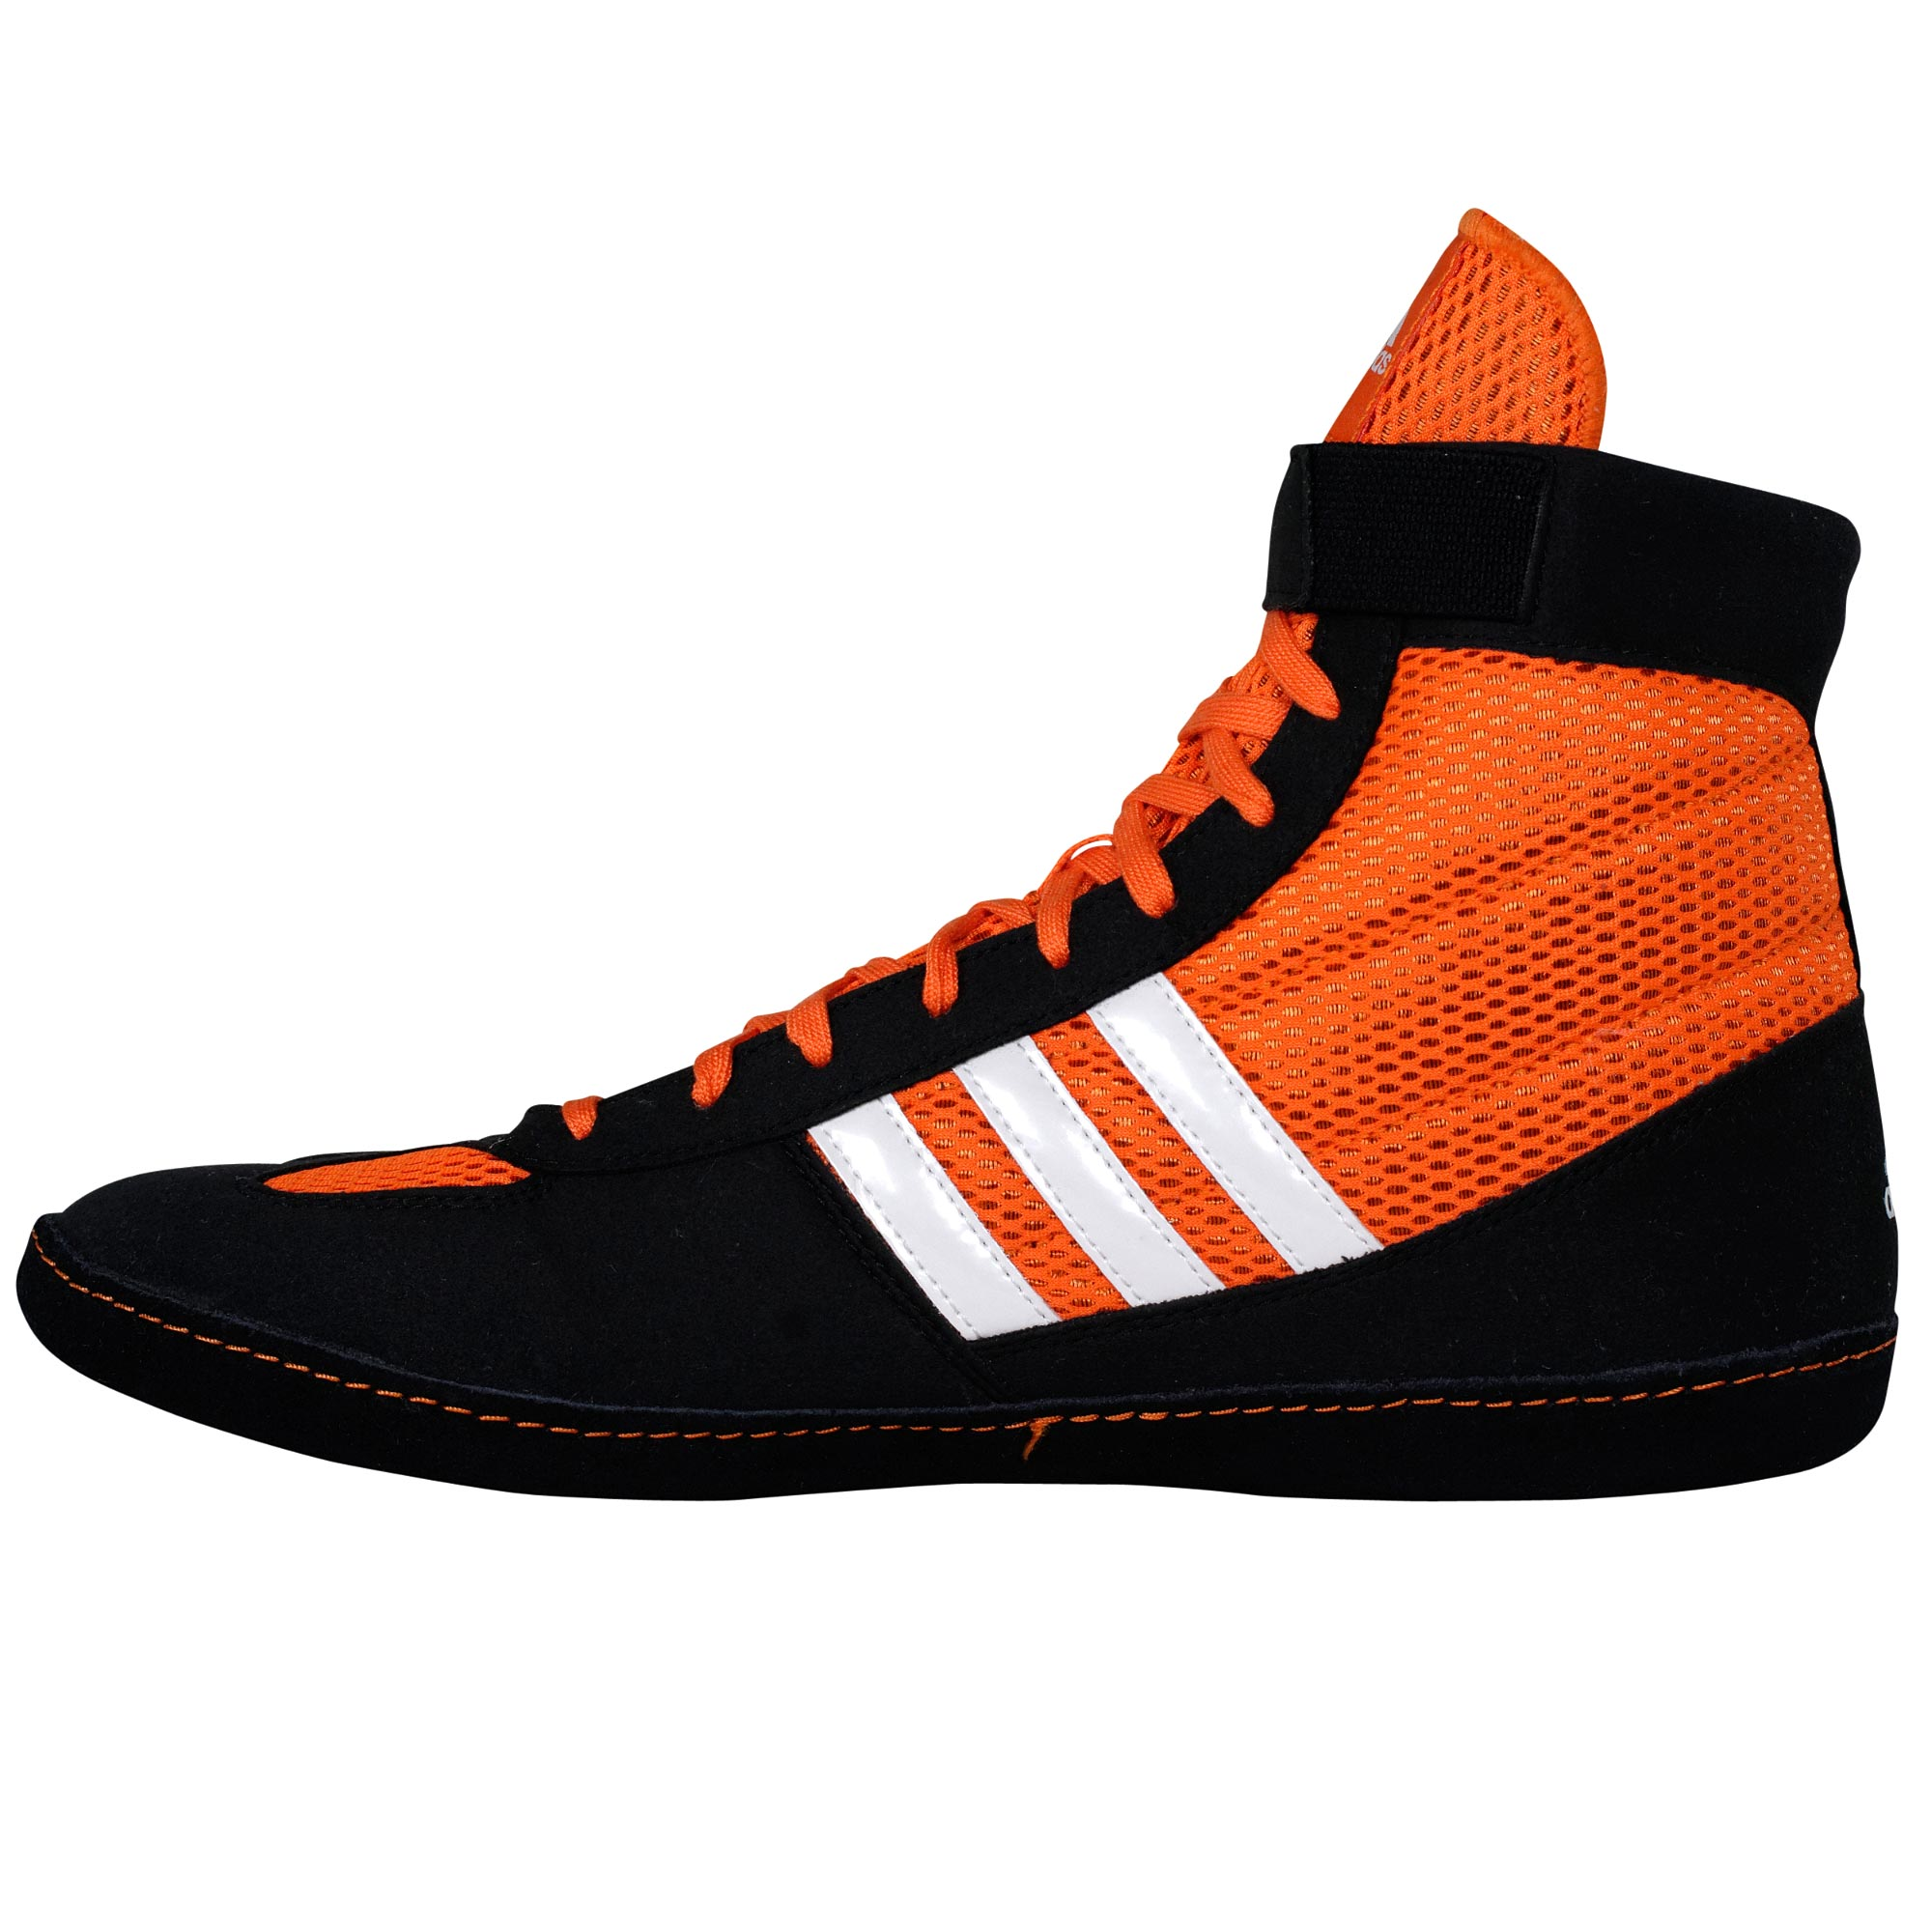 classic fit 9969f 274ea ... outsideAdidas Combat Speed 4 Orange White Black ...